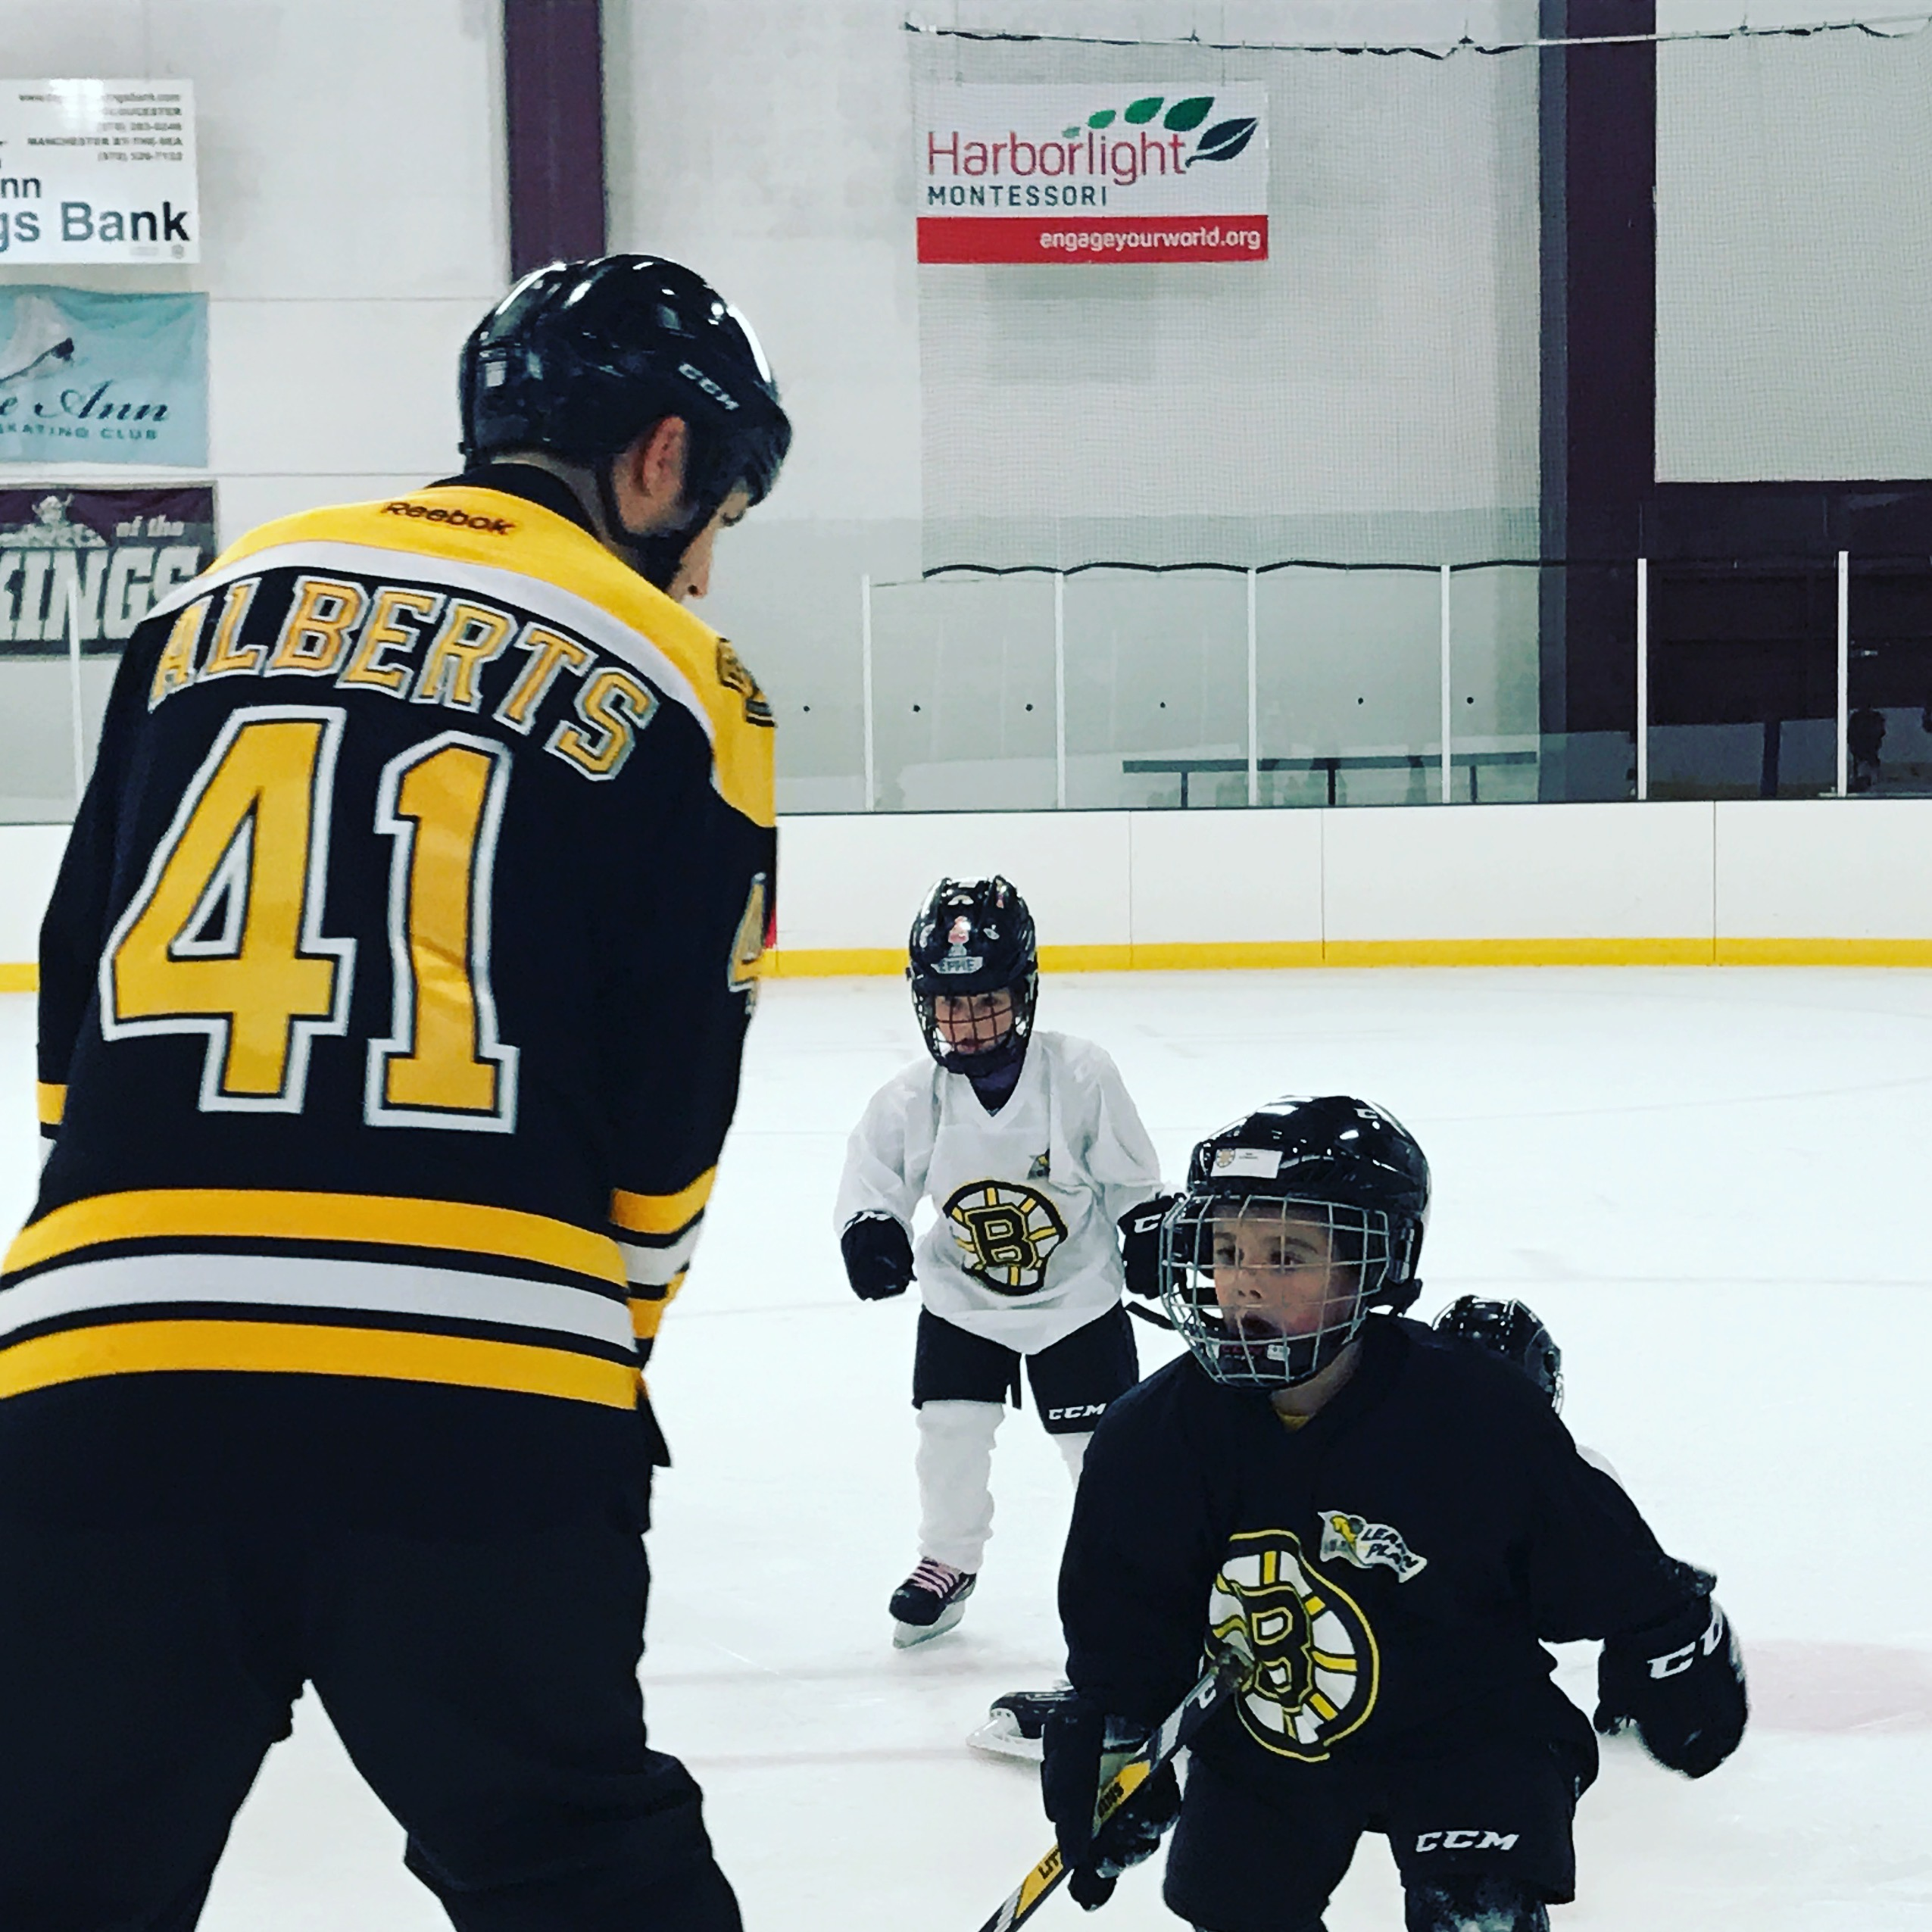 The Bruins Academy and Former Bruin Andrew Alberts at Talbot Rink |  GoodMorningGloucester